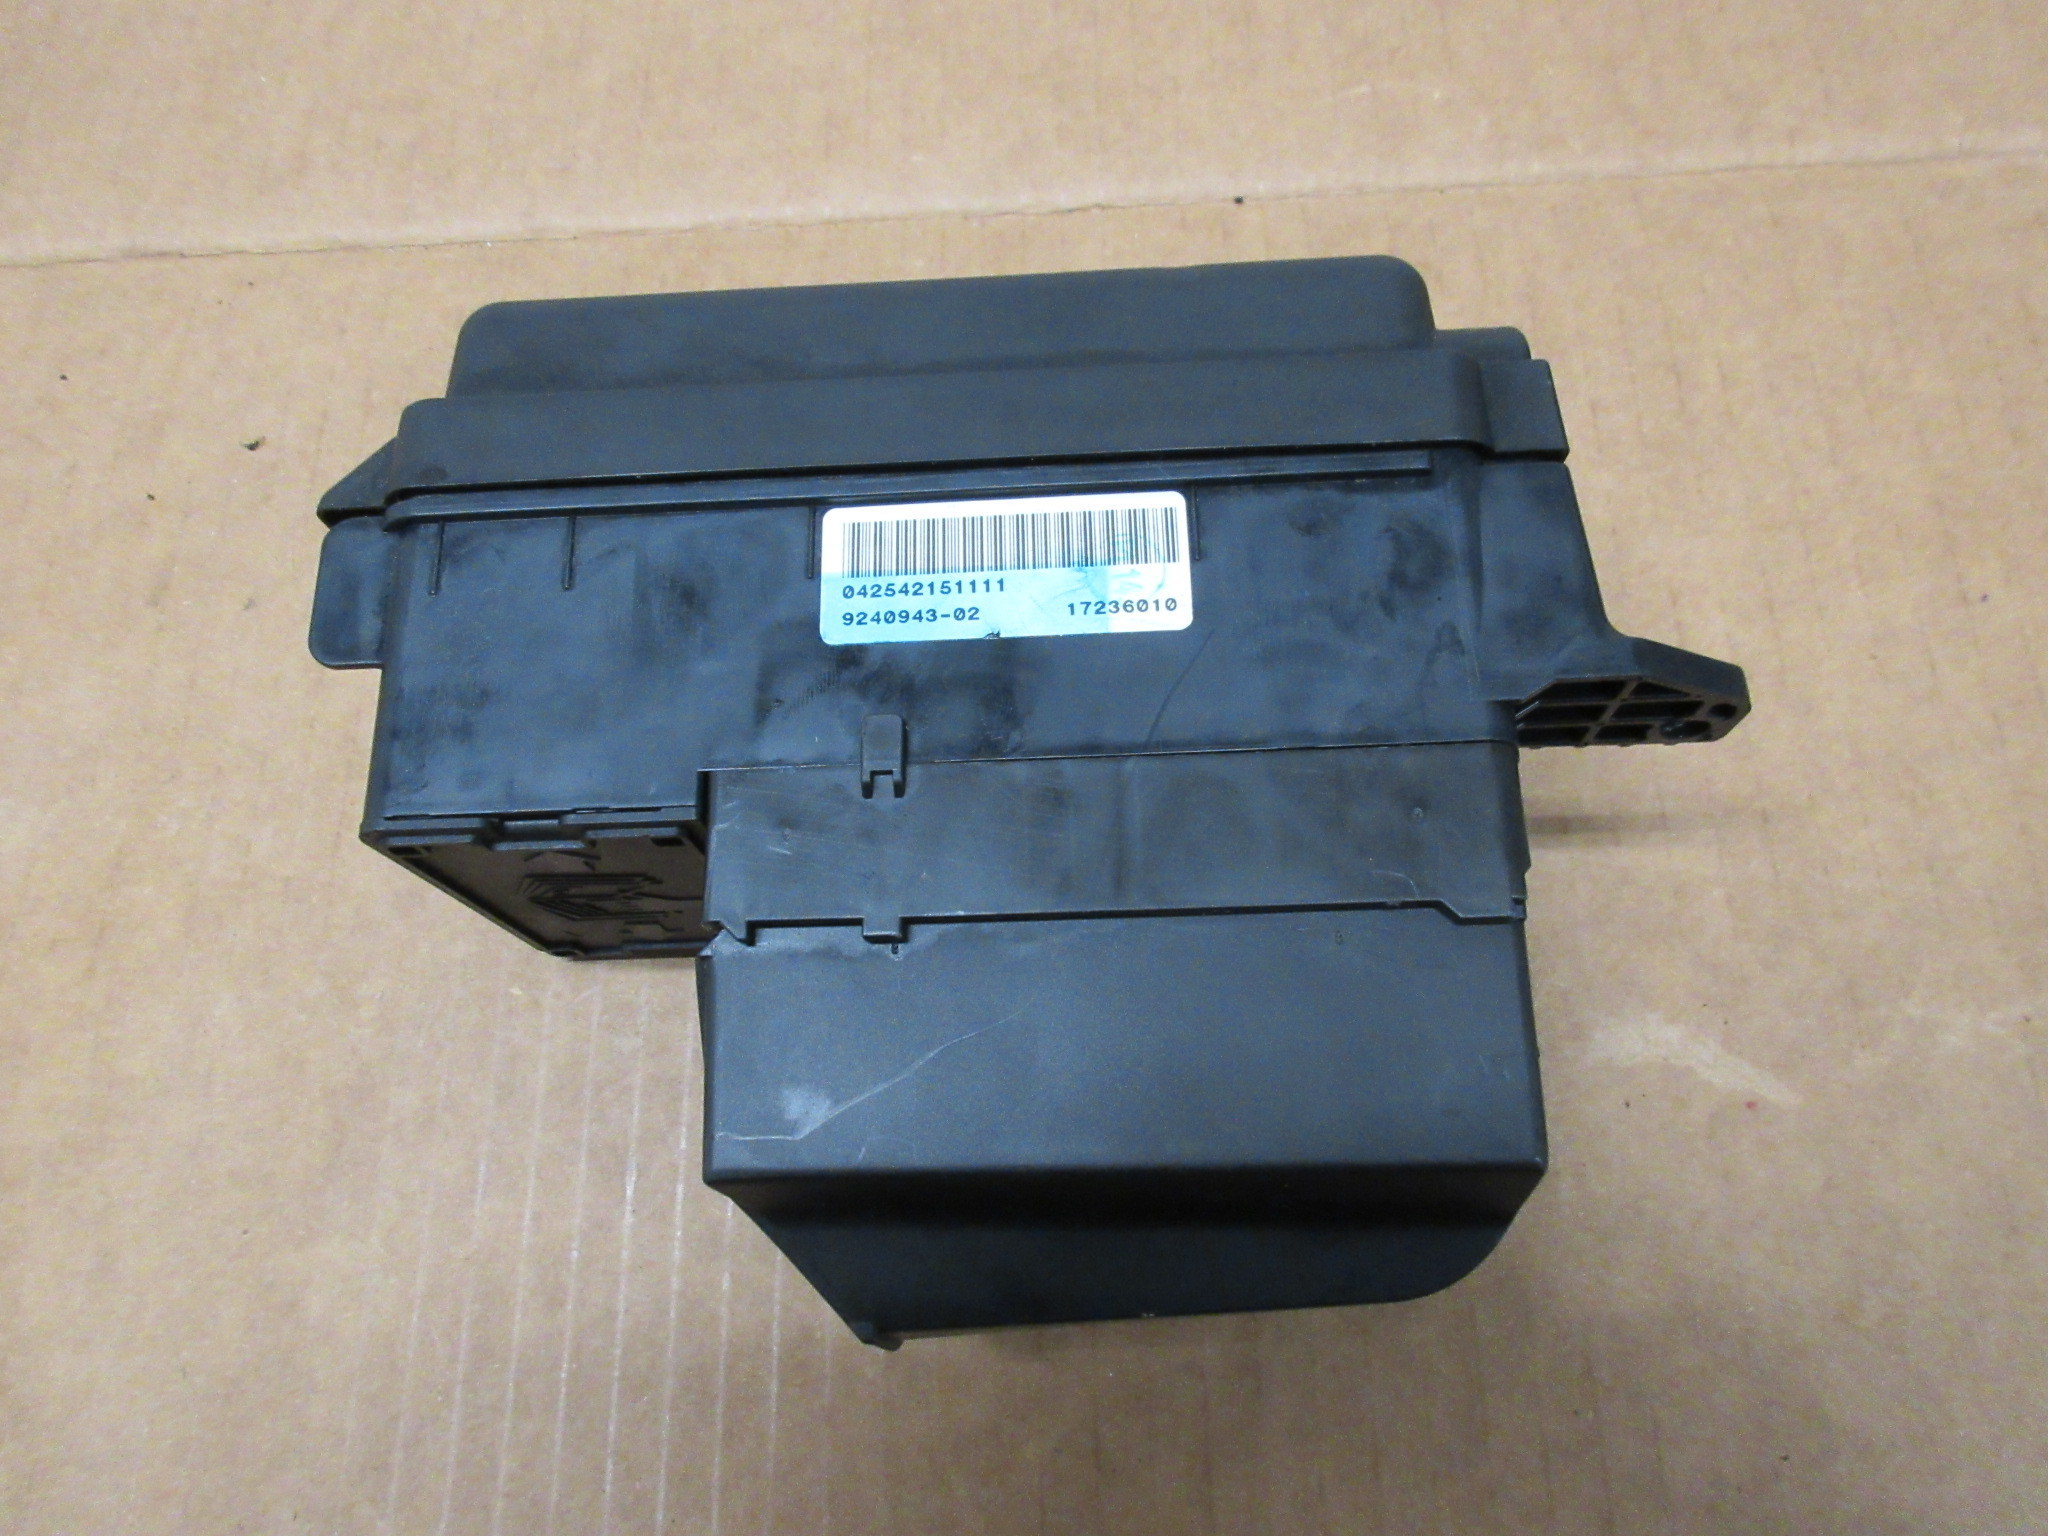 2012 Mini Cooper S R56 1027 Engine Bay Fuse Relay Junction Box Compartment 9240943